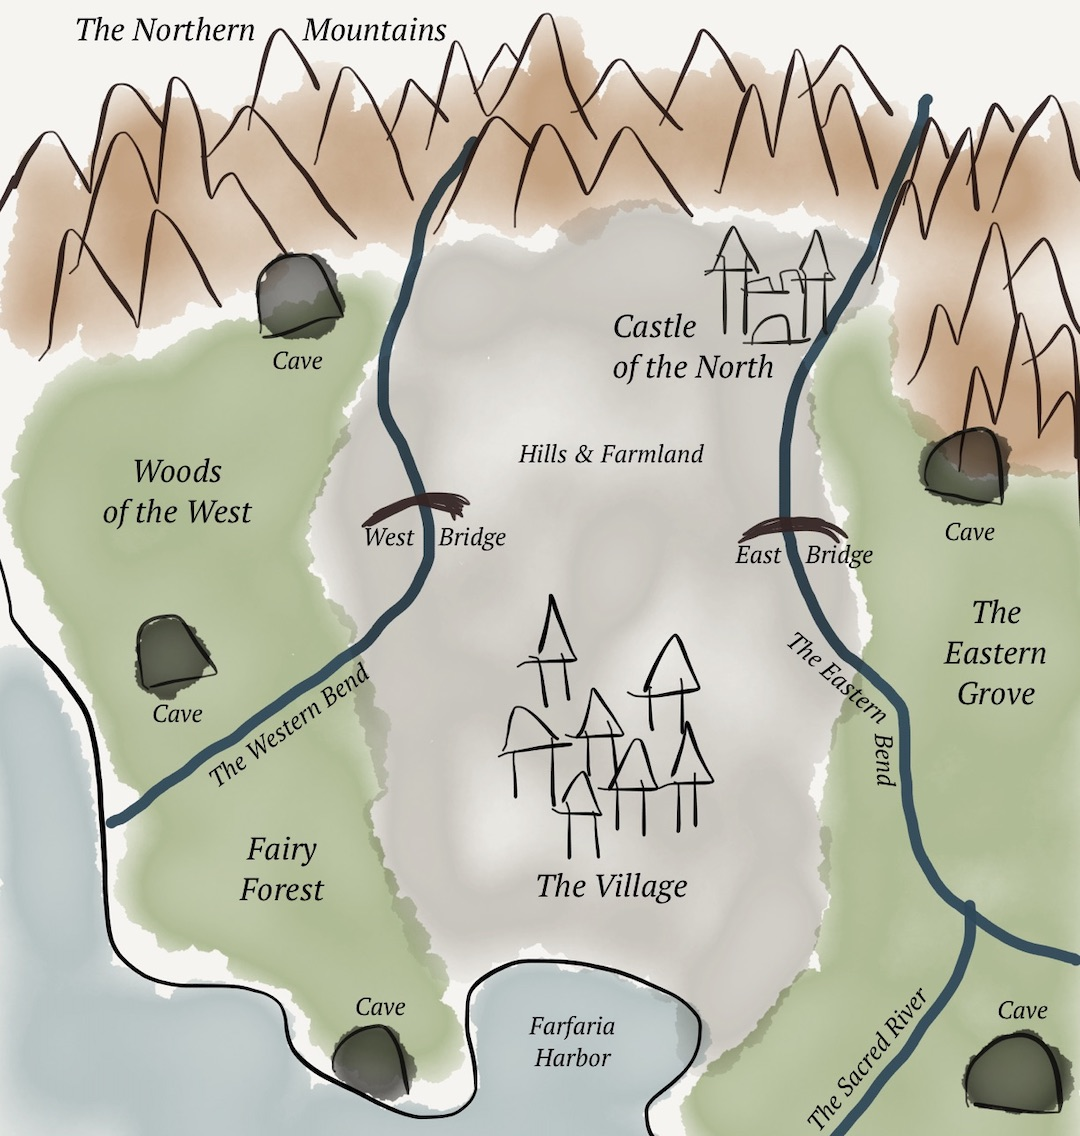 A map of the fictional land of Farfaria, with important locations and landmarks marked and labeled